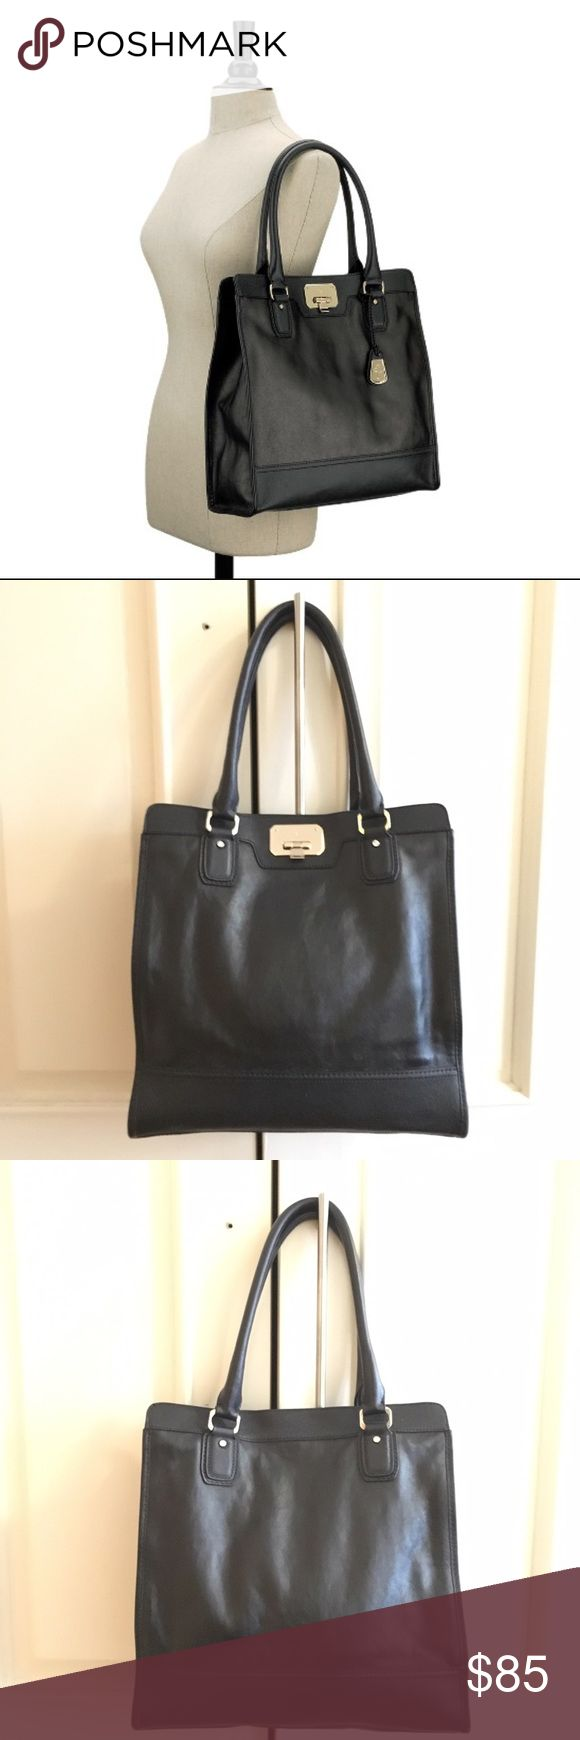 Cole Haan Vintage Valise II Kendra Tote Cole Haan Vintage Valise II Kendra Tote. Color is Black with Purple lining and Silver Hardware. Super cute tall Tote bag shape. Item as pictured. Final sale. Cole Haan Bags Totes